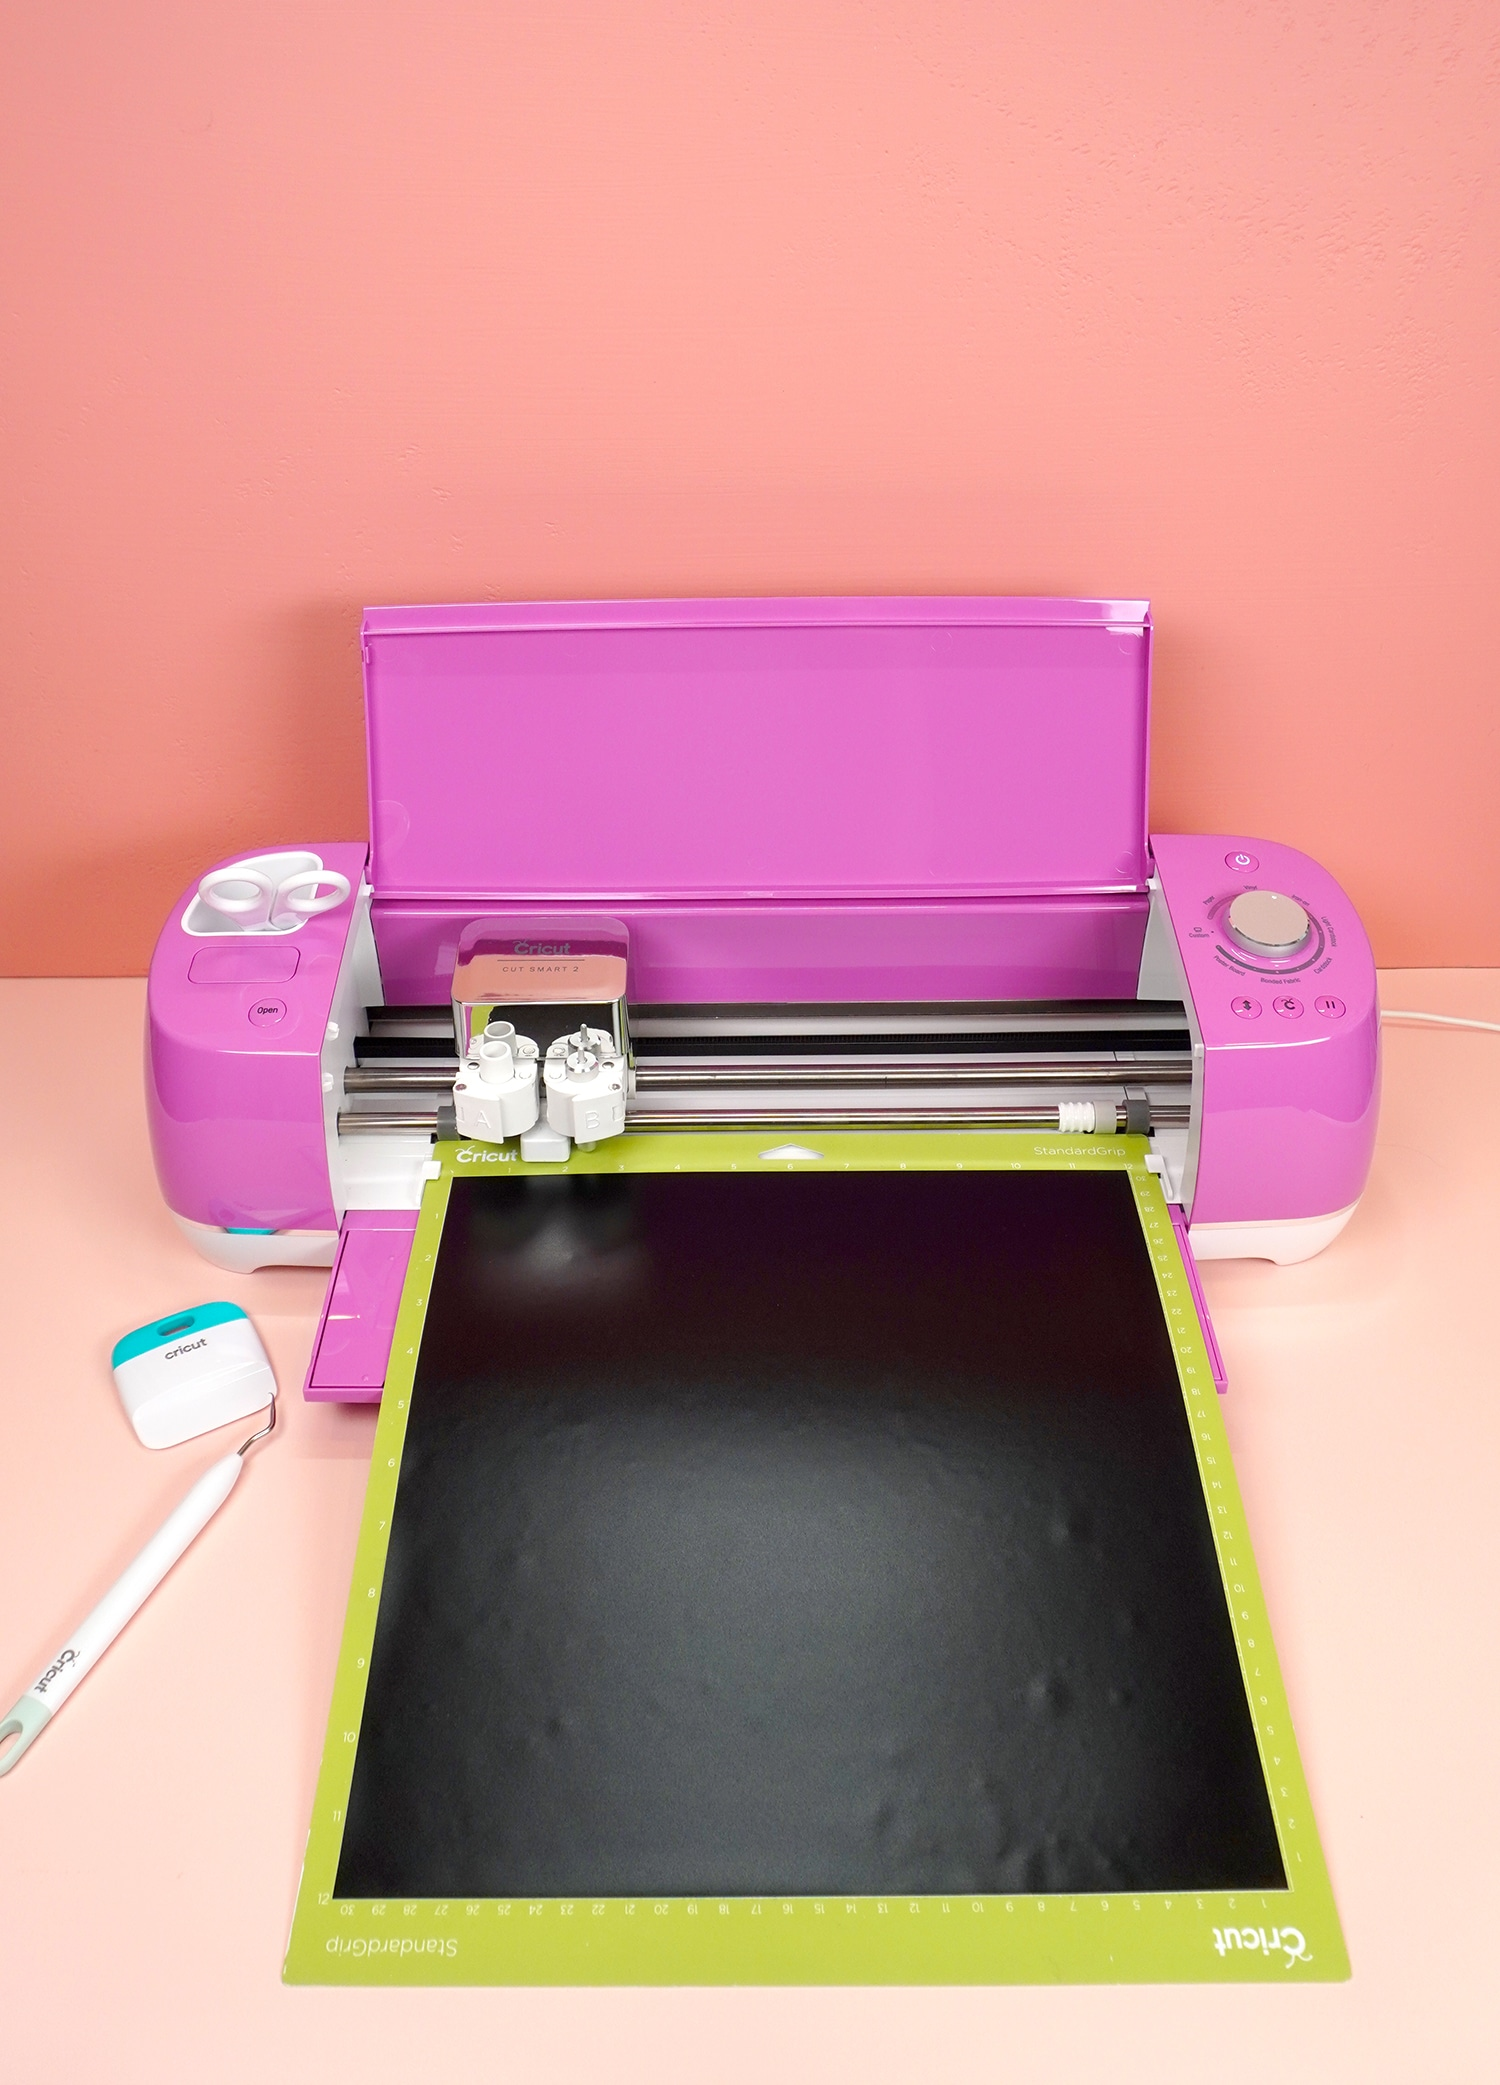 Fuchsia Cricut Explore Air 2 machine with mat and black vinyl, scraper tool, and weeding hook